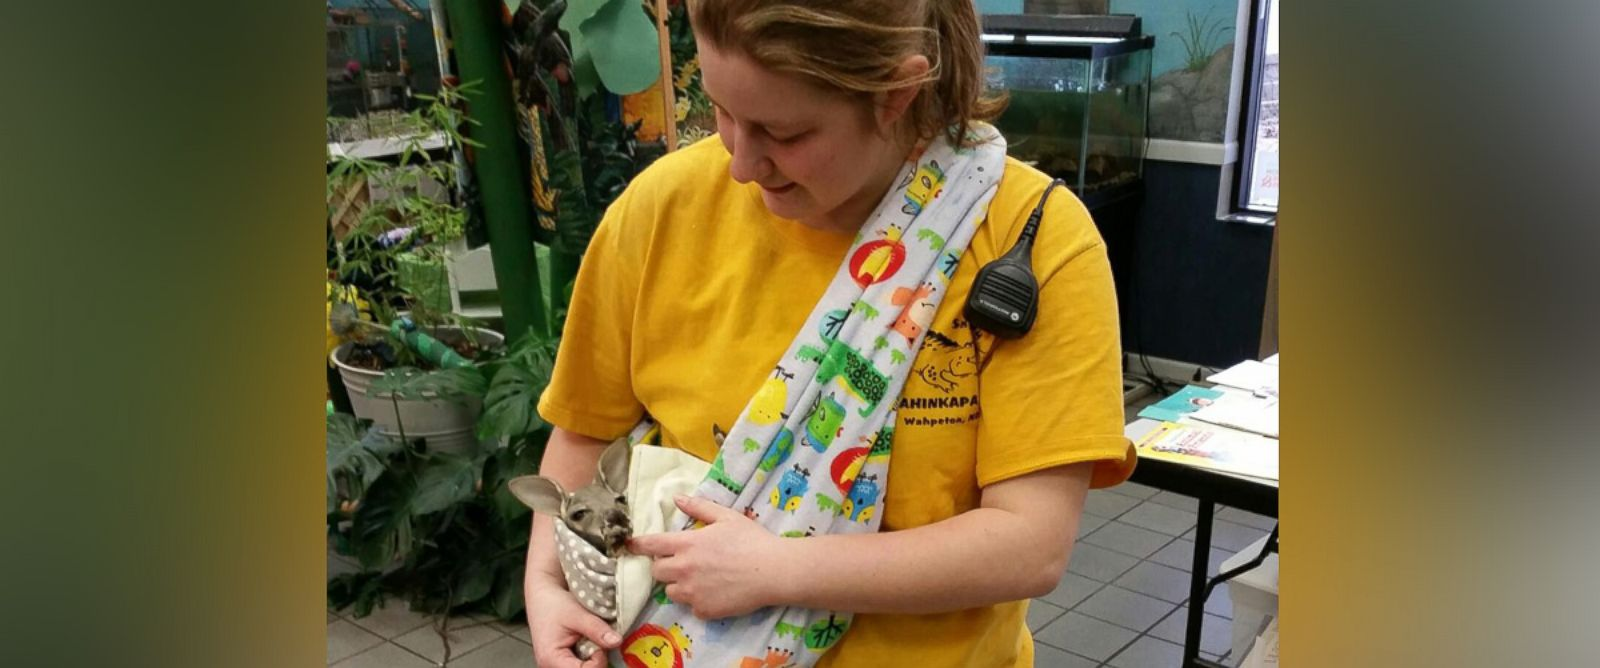 PHOTO: Zookeeper Amanda Dukart became the mother to a 4-month-old kangaroo after its mother died unexpectedly about a week ago at the Chahinkapa Zoo in North Dakota. She carries the joey, named Barkly, around in a pouch 24/7.